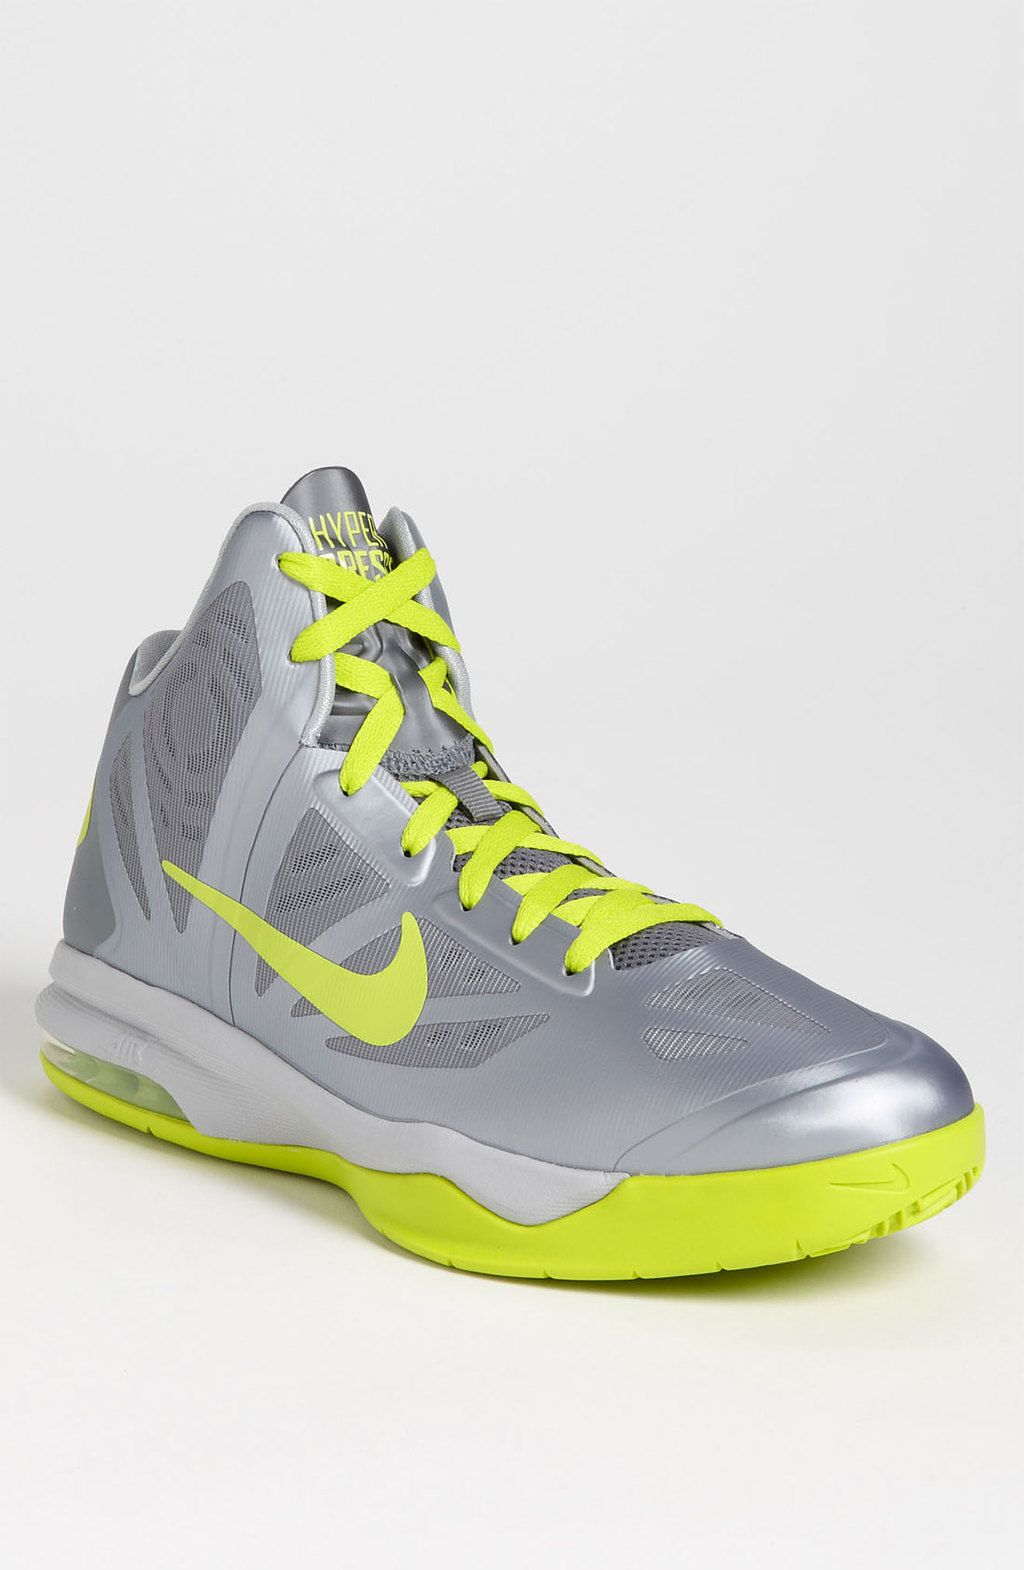 new style b543a d53a5 Nike - Air Max Hyperaggressor Basketball Shoe Men  Air  Max  SneakerHeadStore.com